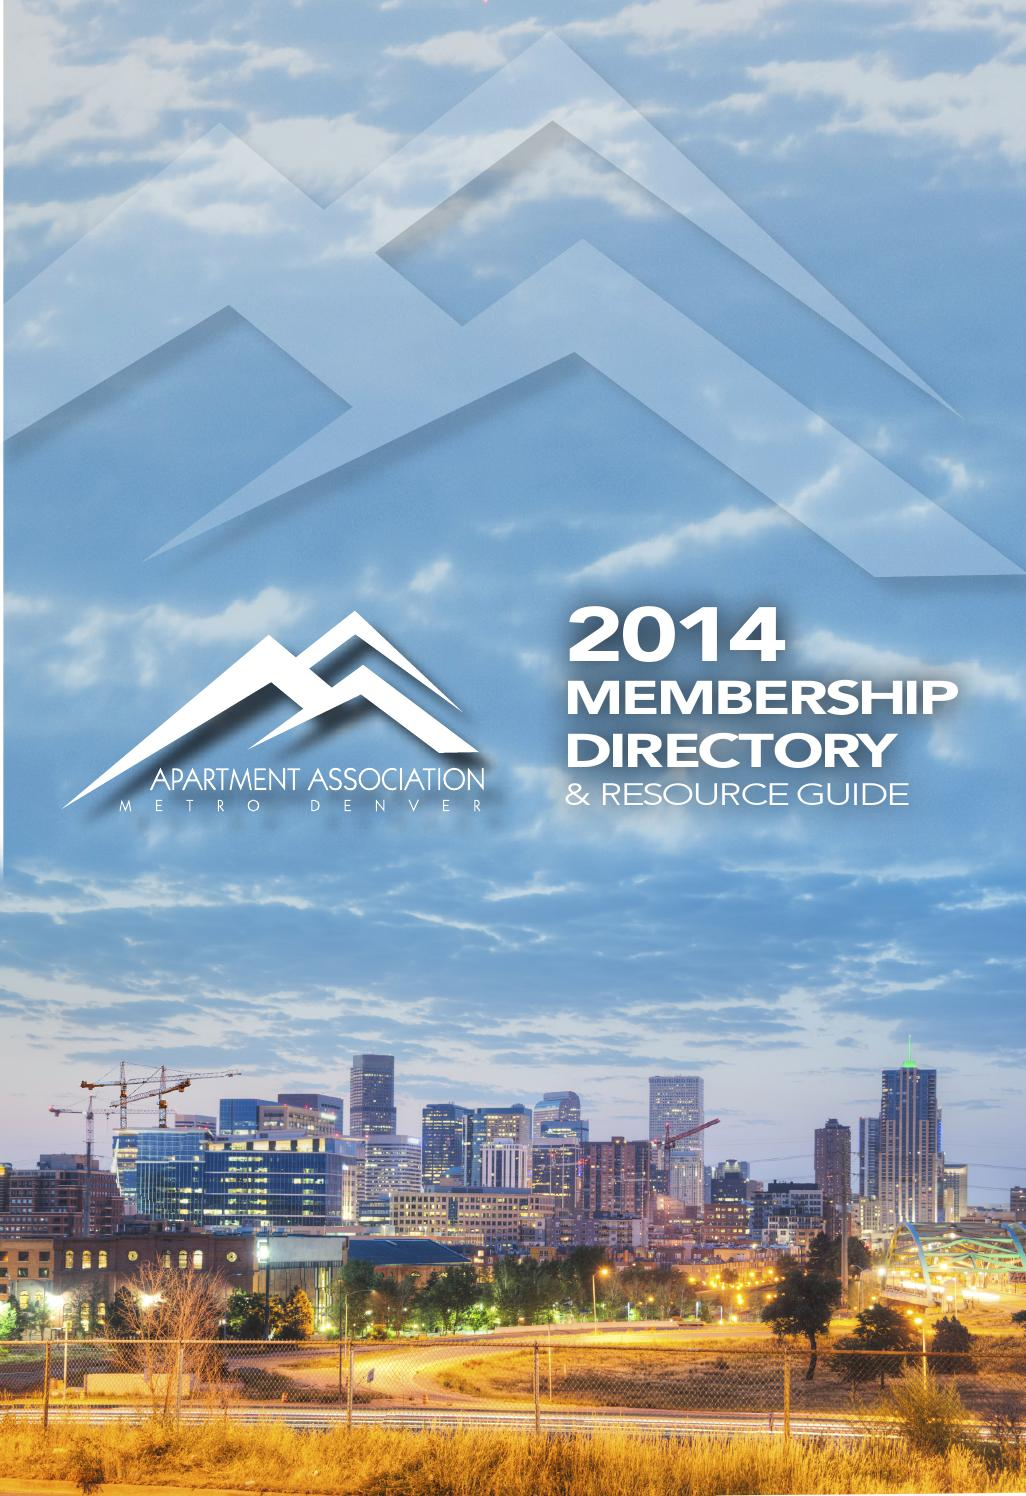 2014 Membership Directory by Apartment Association of Metro